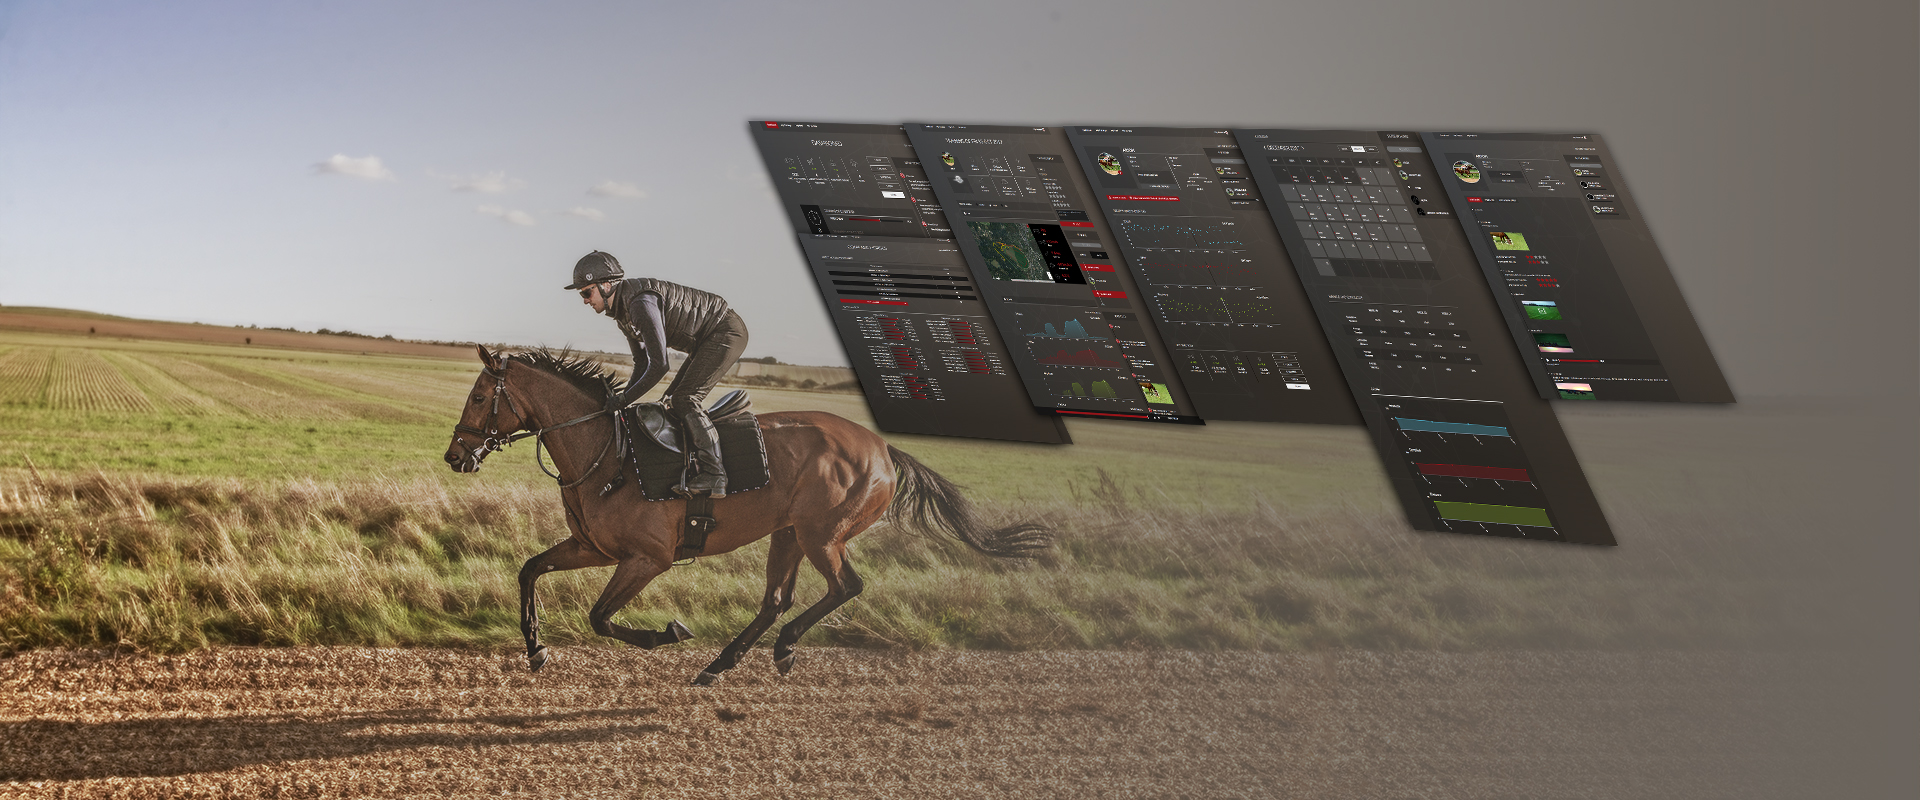 Racehorse training heart rate speed